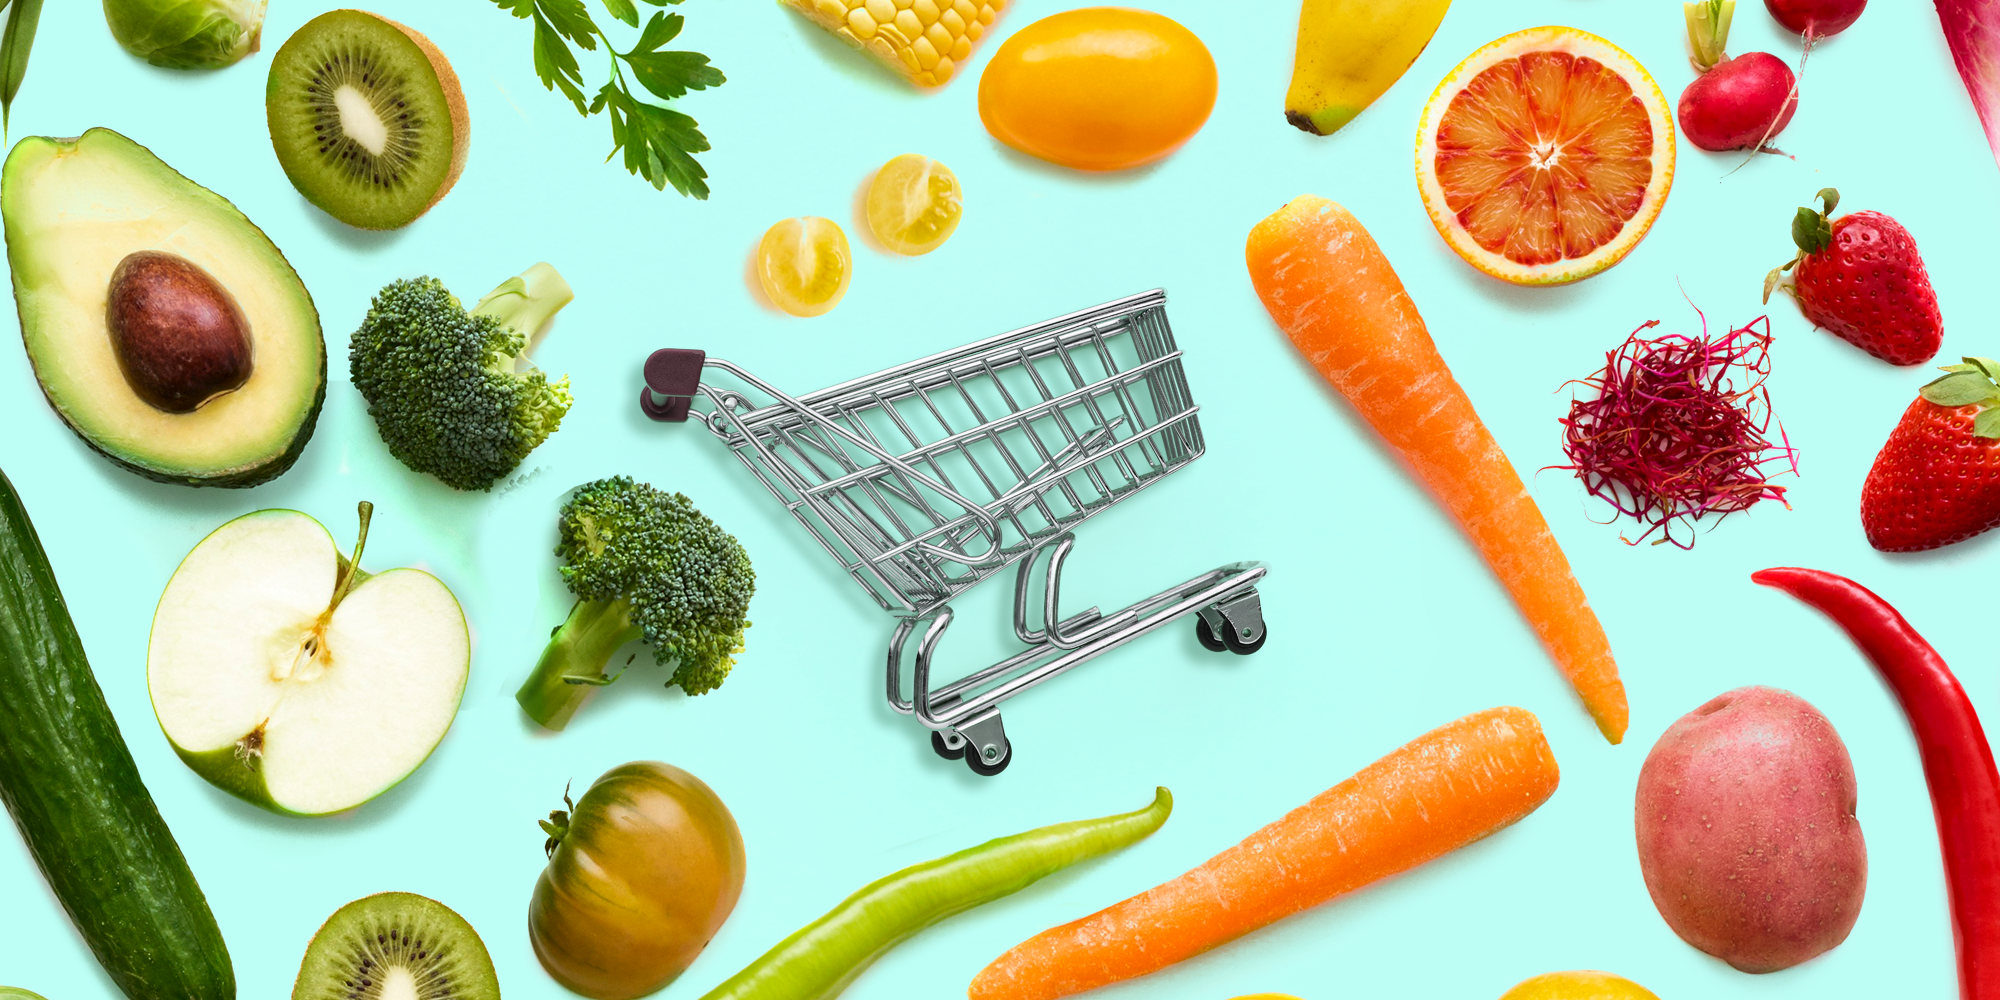 Exactly How Shopping at Whole Foods Can Get You $10 to Spend on Amazon Prime Day